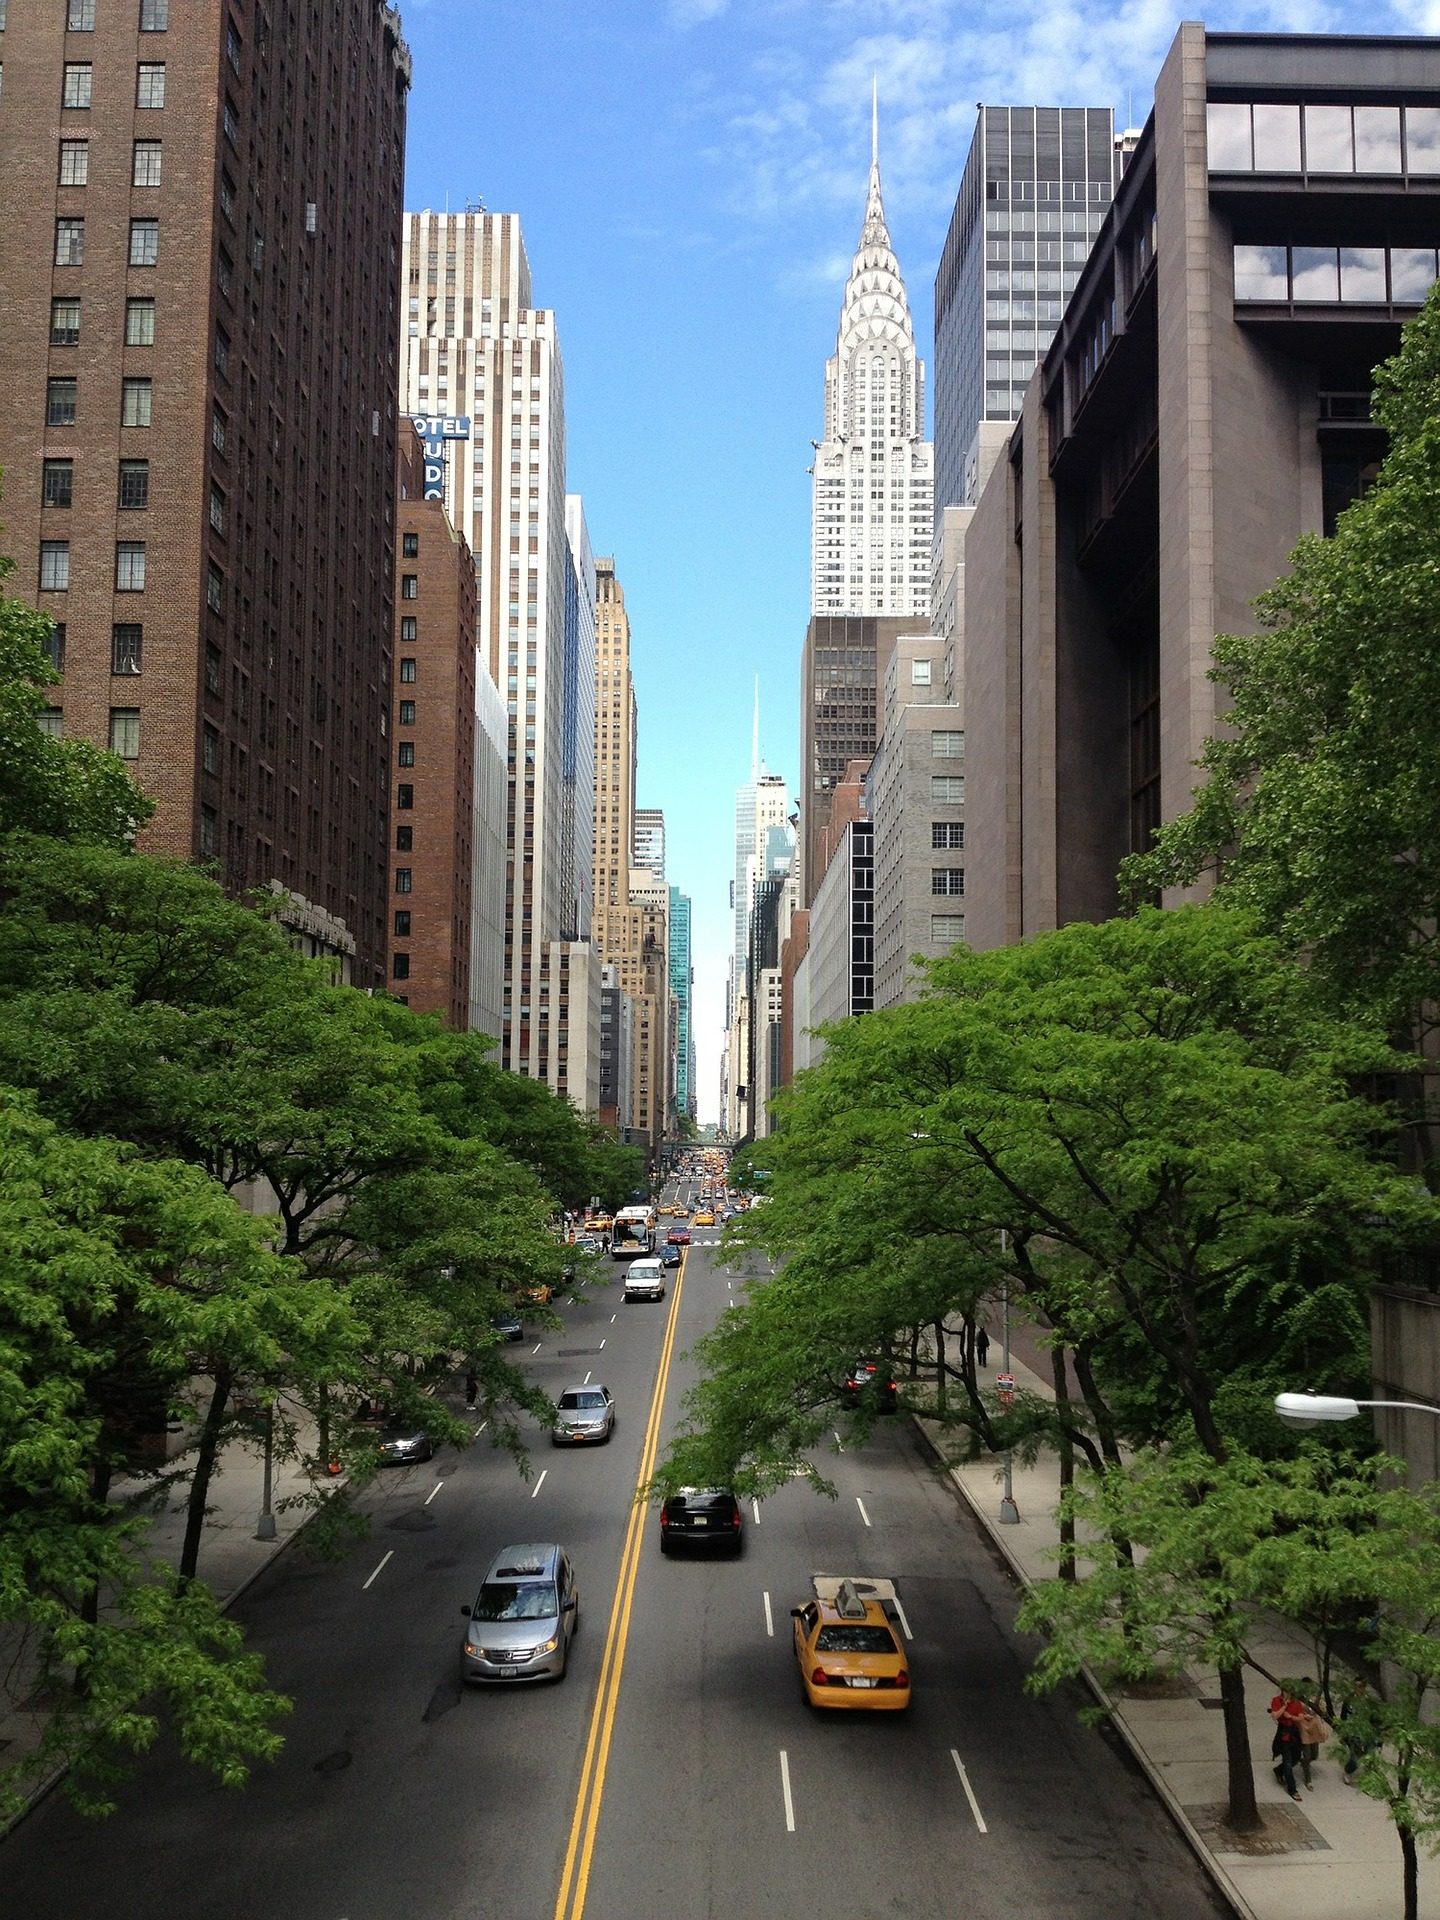 Street trees in NYC Photo retrieved from Pixabay